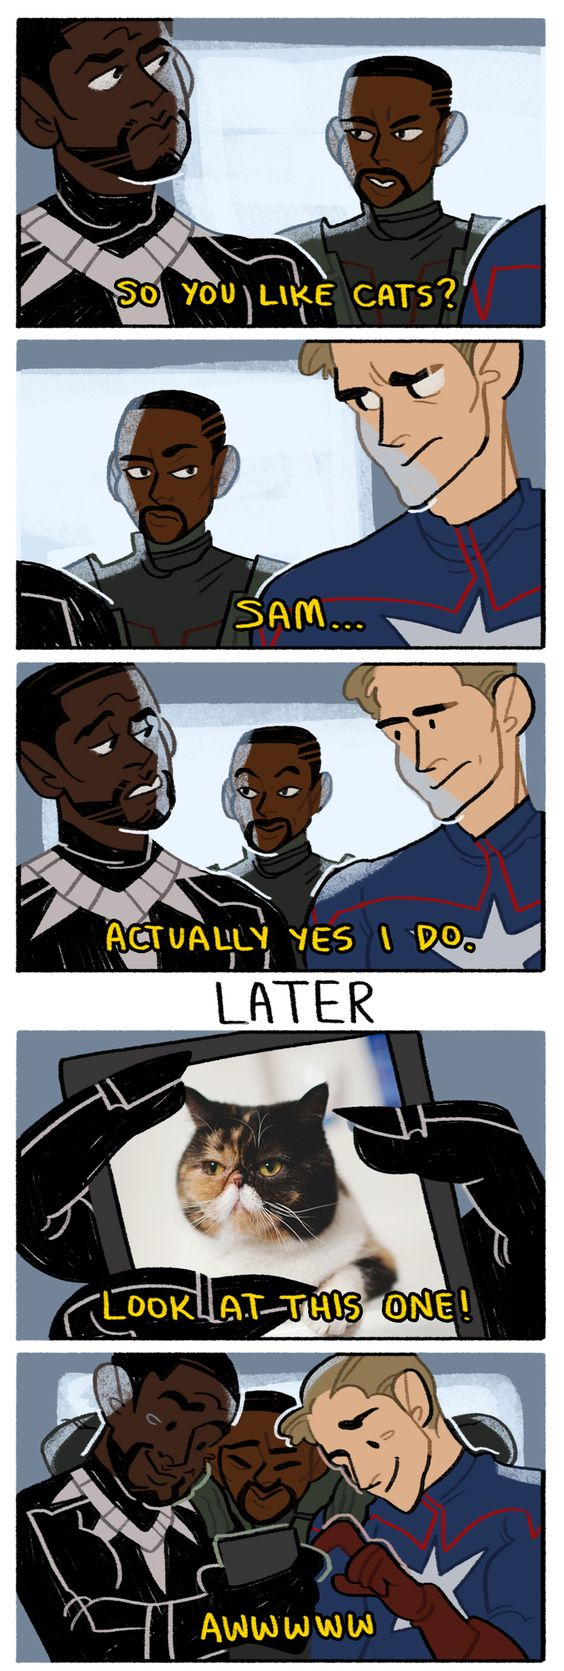 Black Panther, Falcon, and Captain America Discussing Cats! XD Hahaha!!! - Captain America: Civil War #T'Challa #SamWilson #SteveRogers